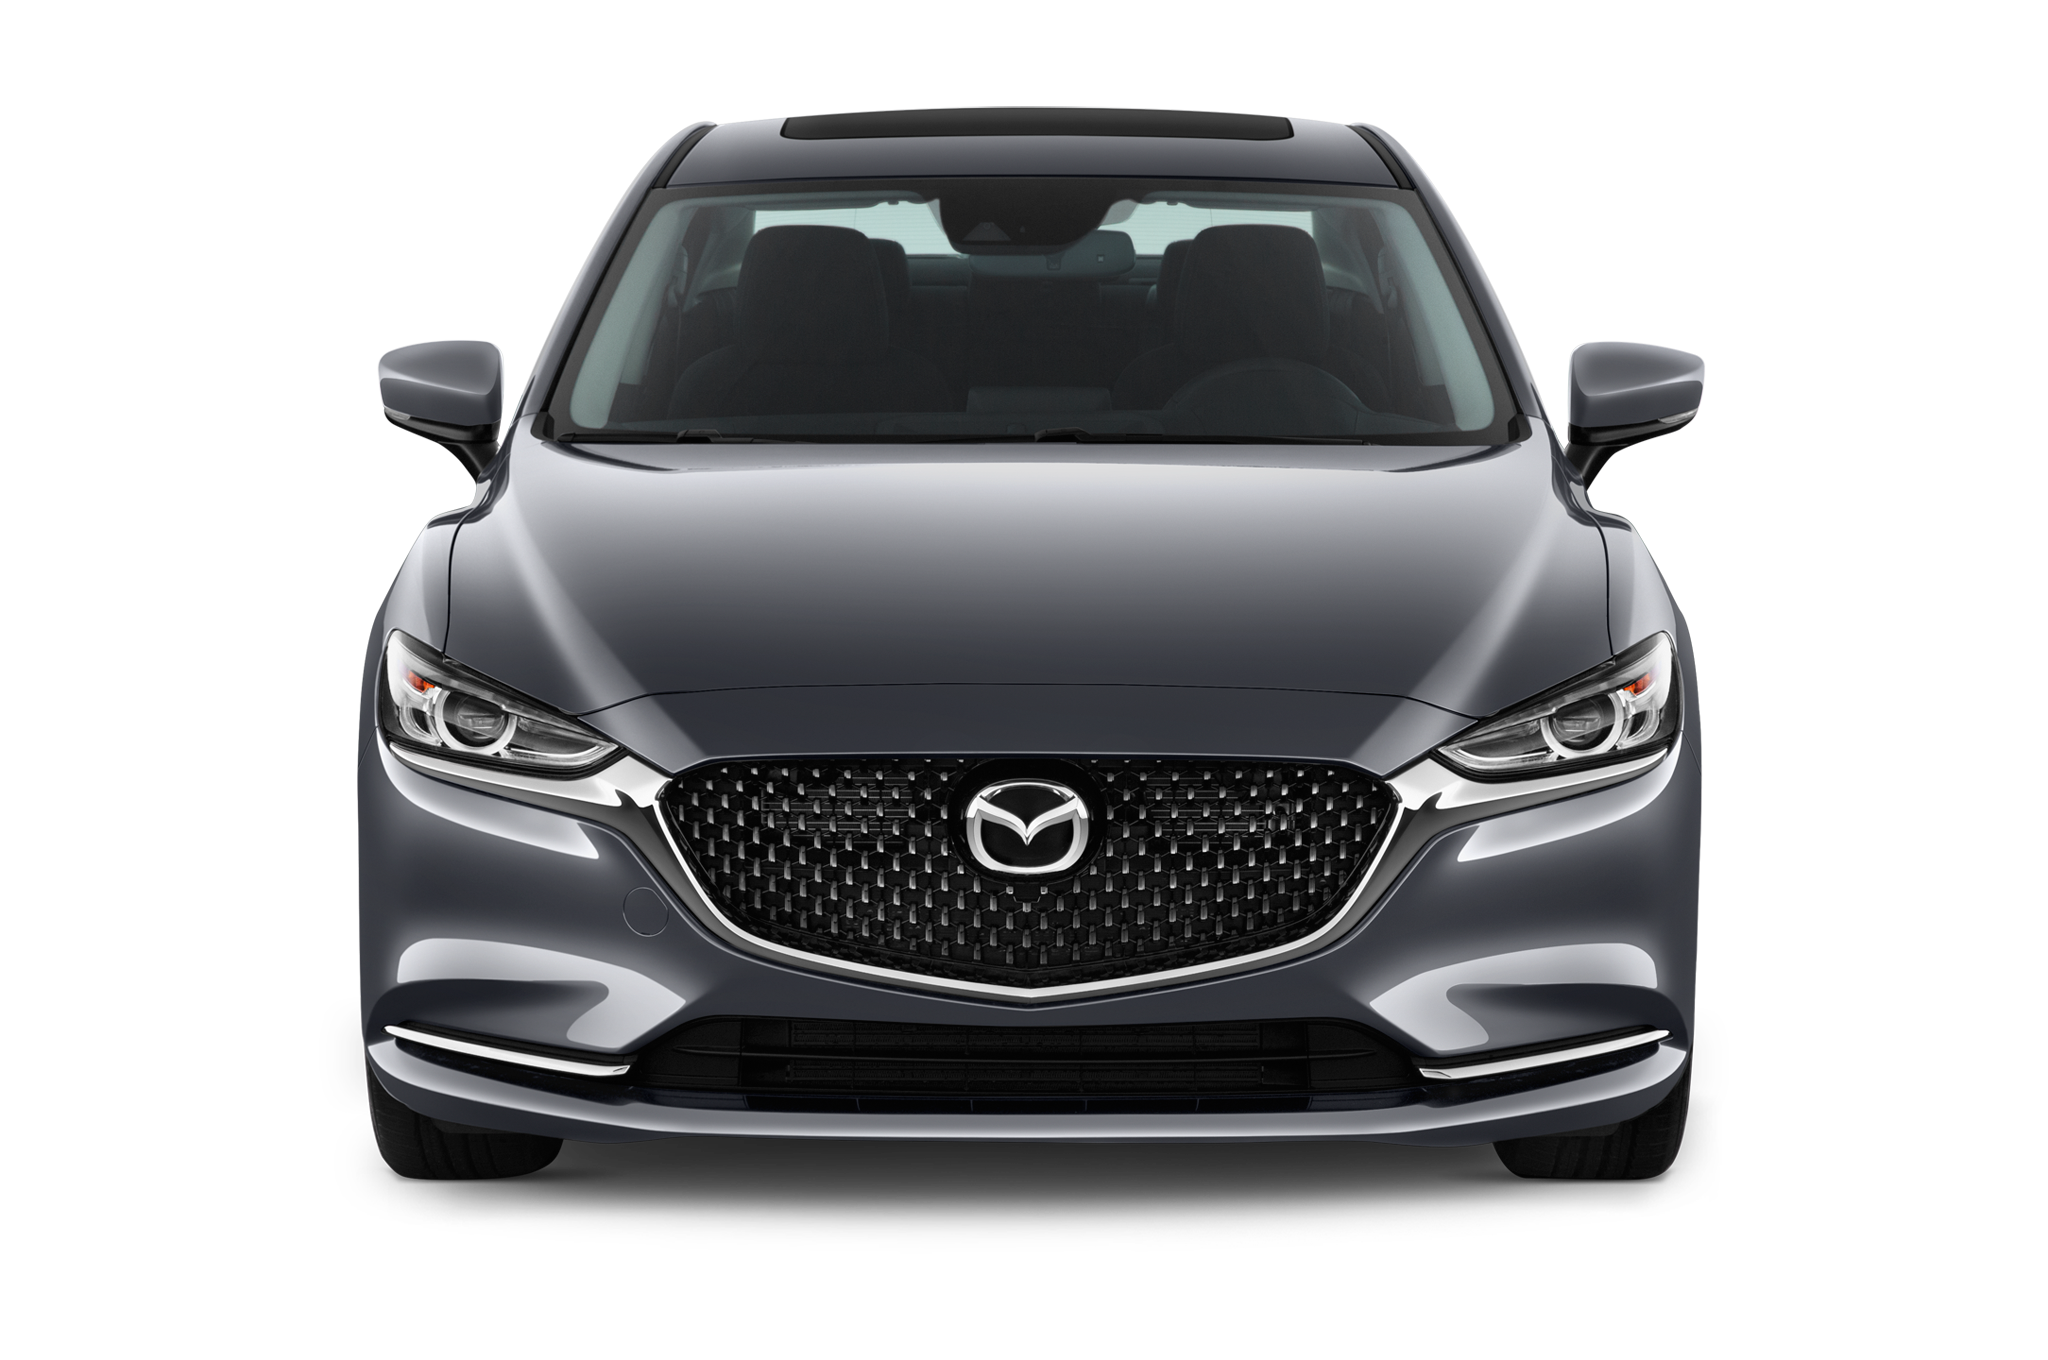 2018 Mazda6 Signature 2 5L Turbo First Drive Review